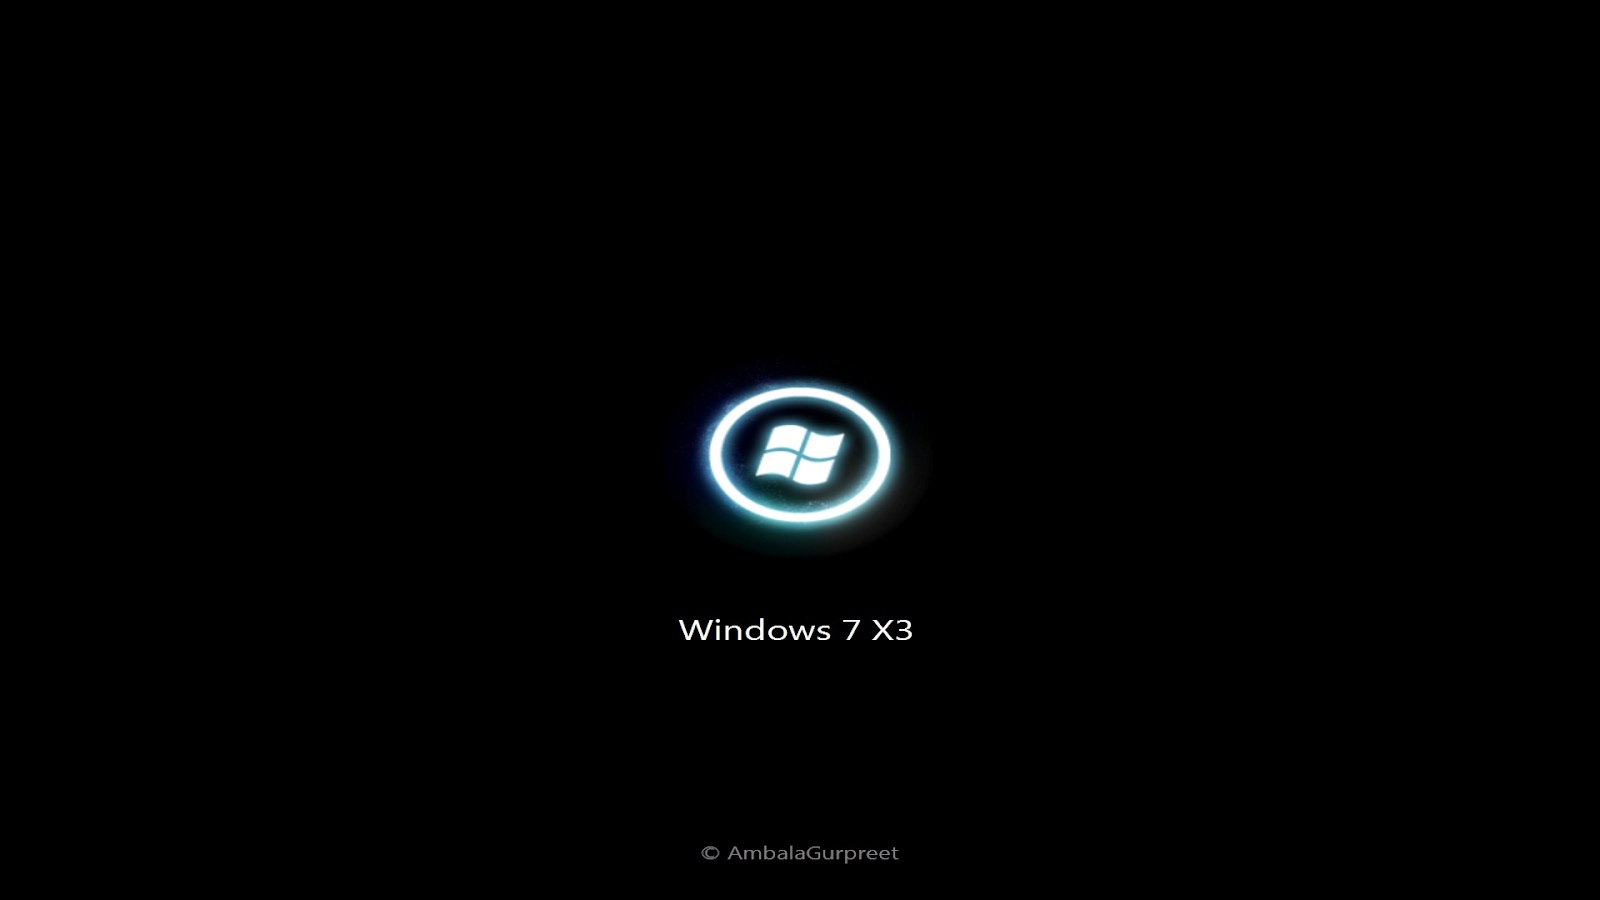 boot screen for windows 7 x3 ambalagurpreet